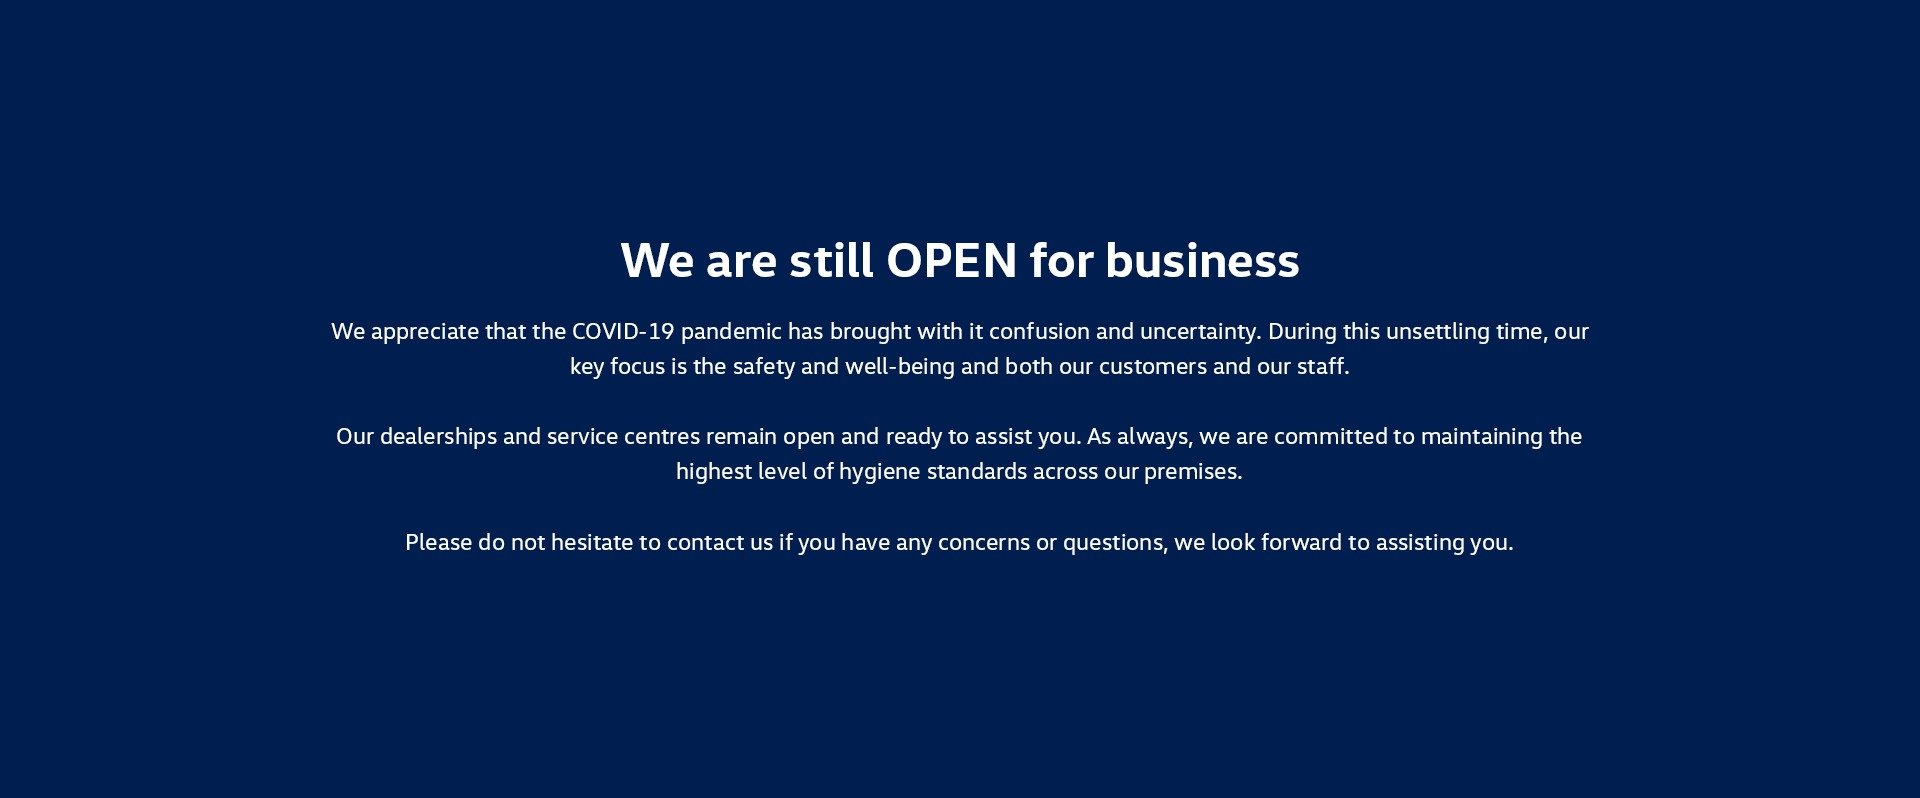 We are still OPEN for business